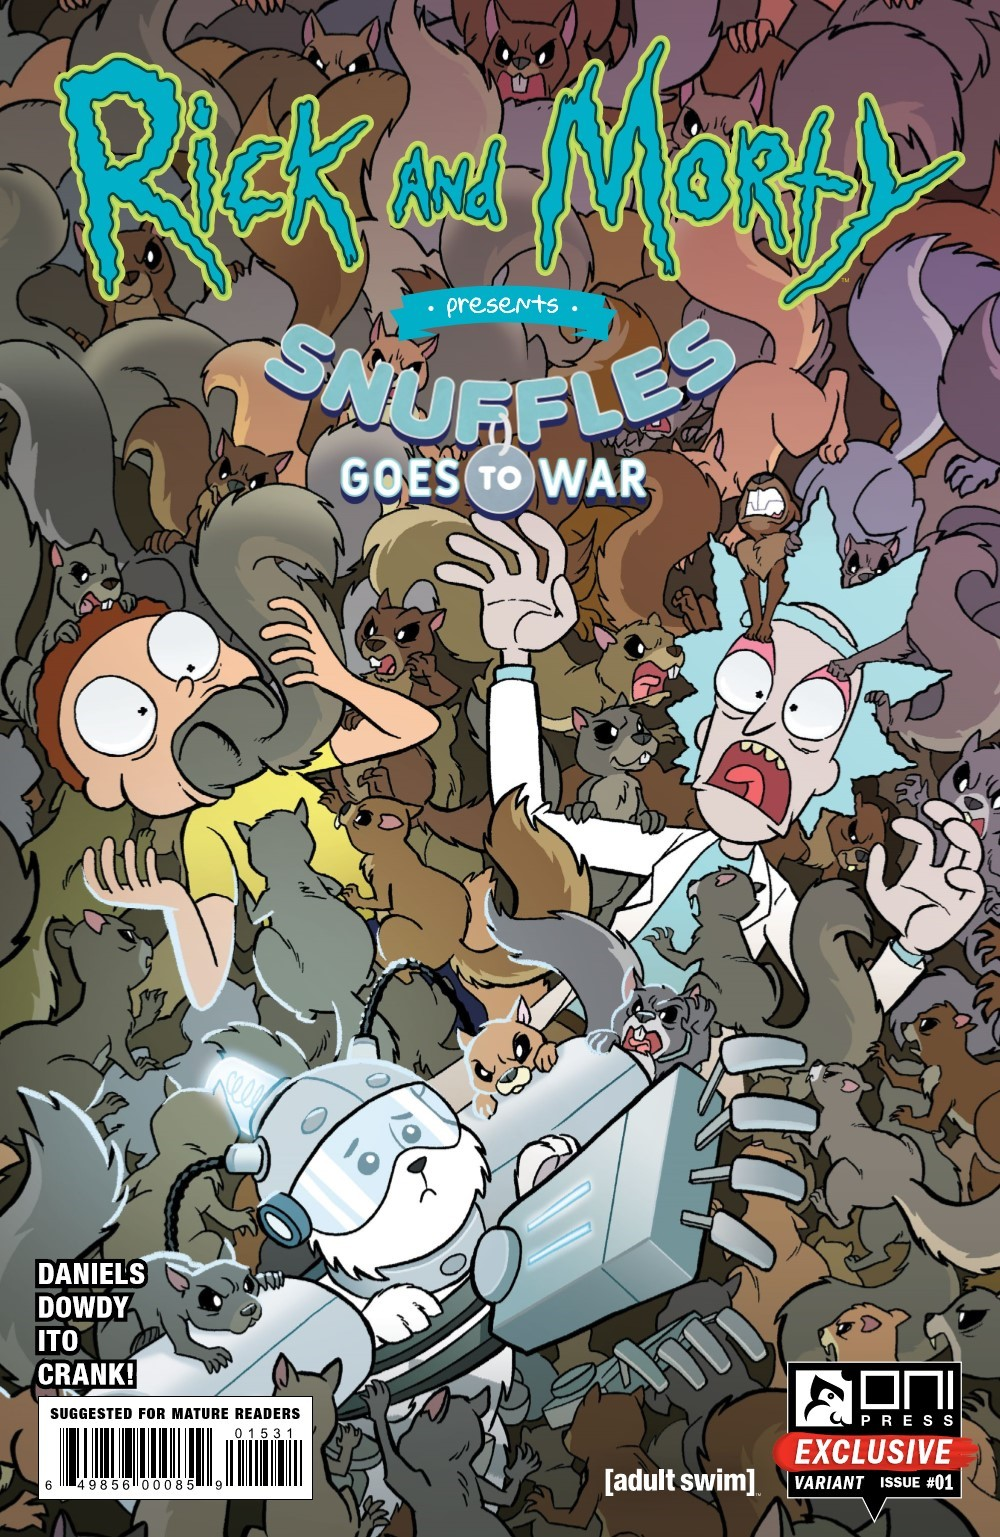 RM-PRES-SNUFFLES-1-REFERENCE-03 ComicList Previews: RICK AND MORTY PRESENTS SNUFFLES GOES TO WAR #1